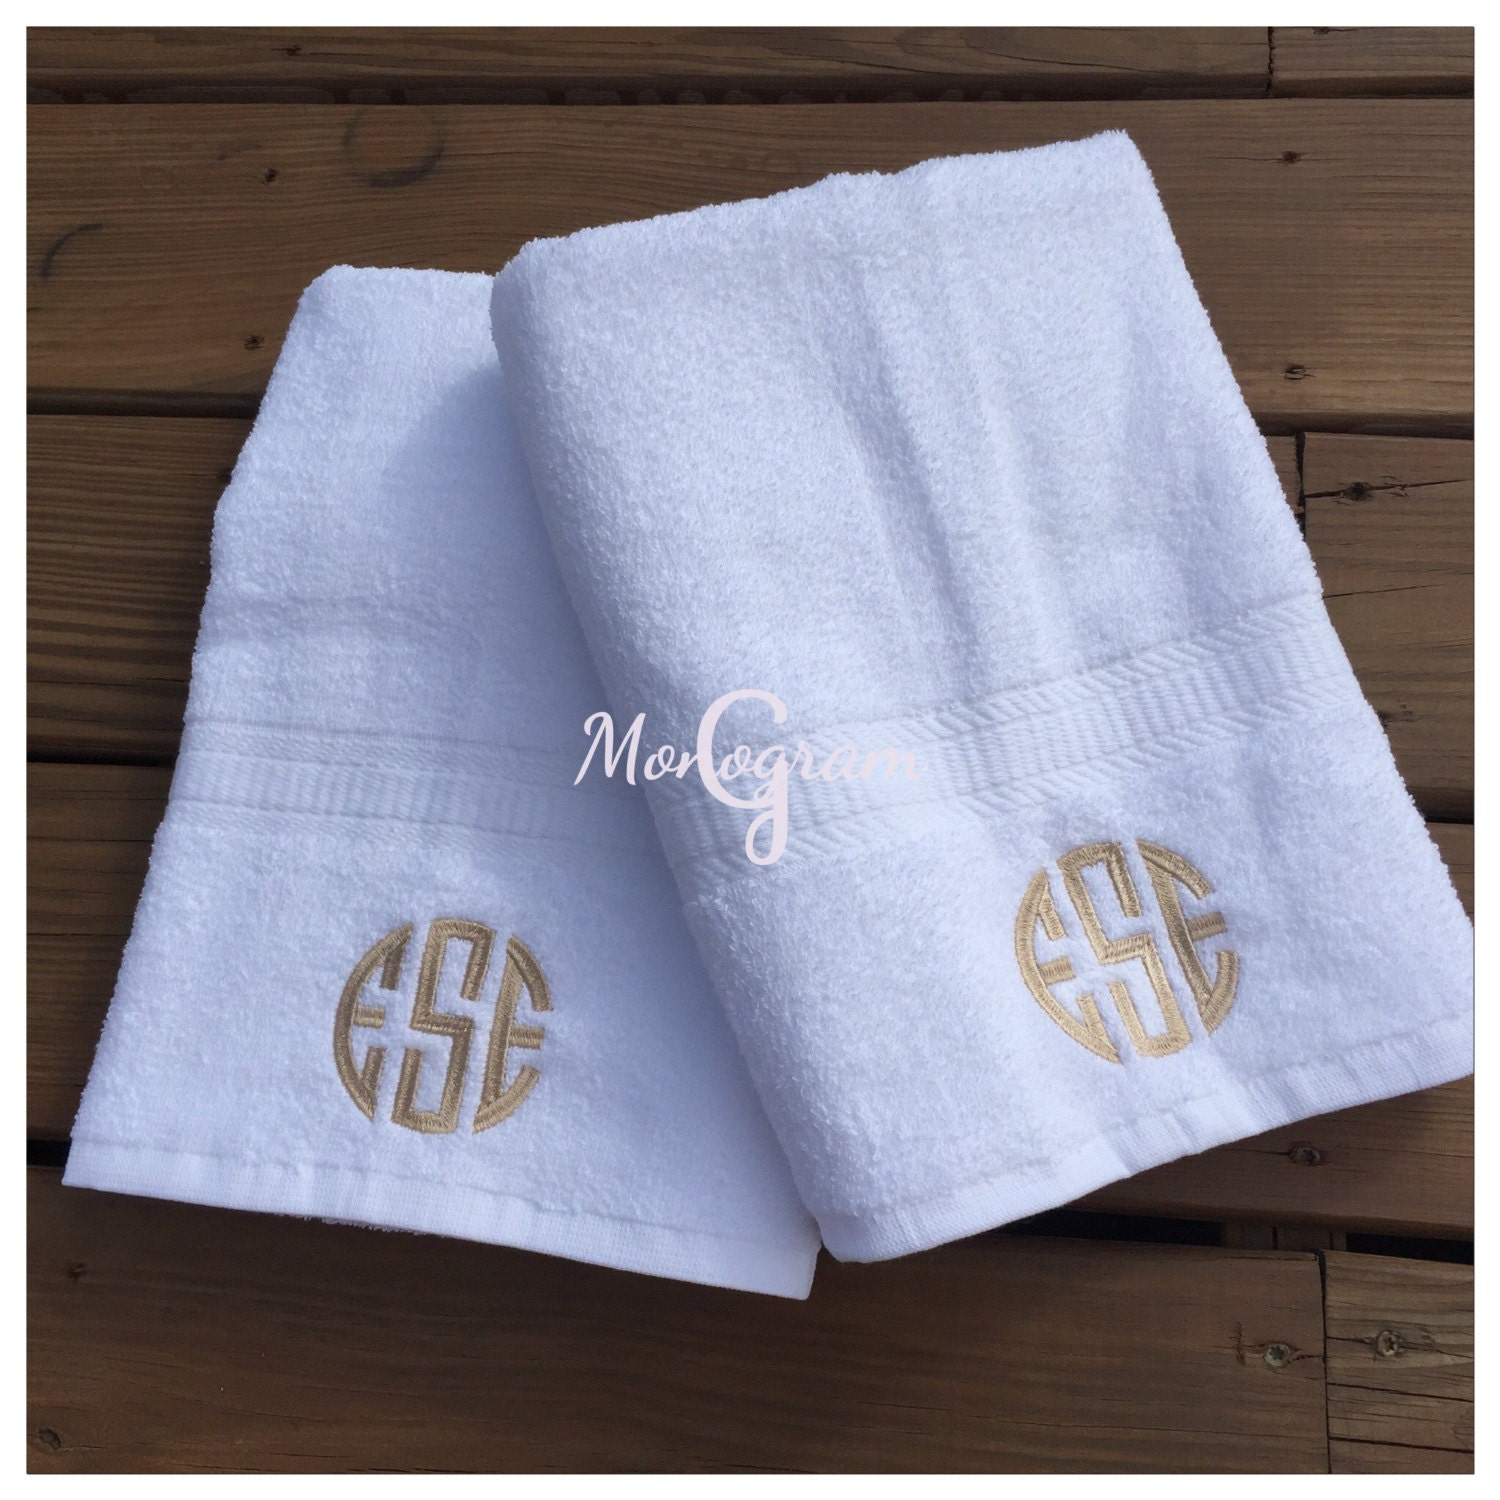 Monogram Towel Set/ Personalized Towels/ His And Her Bath